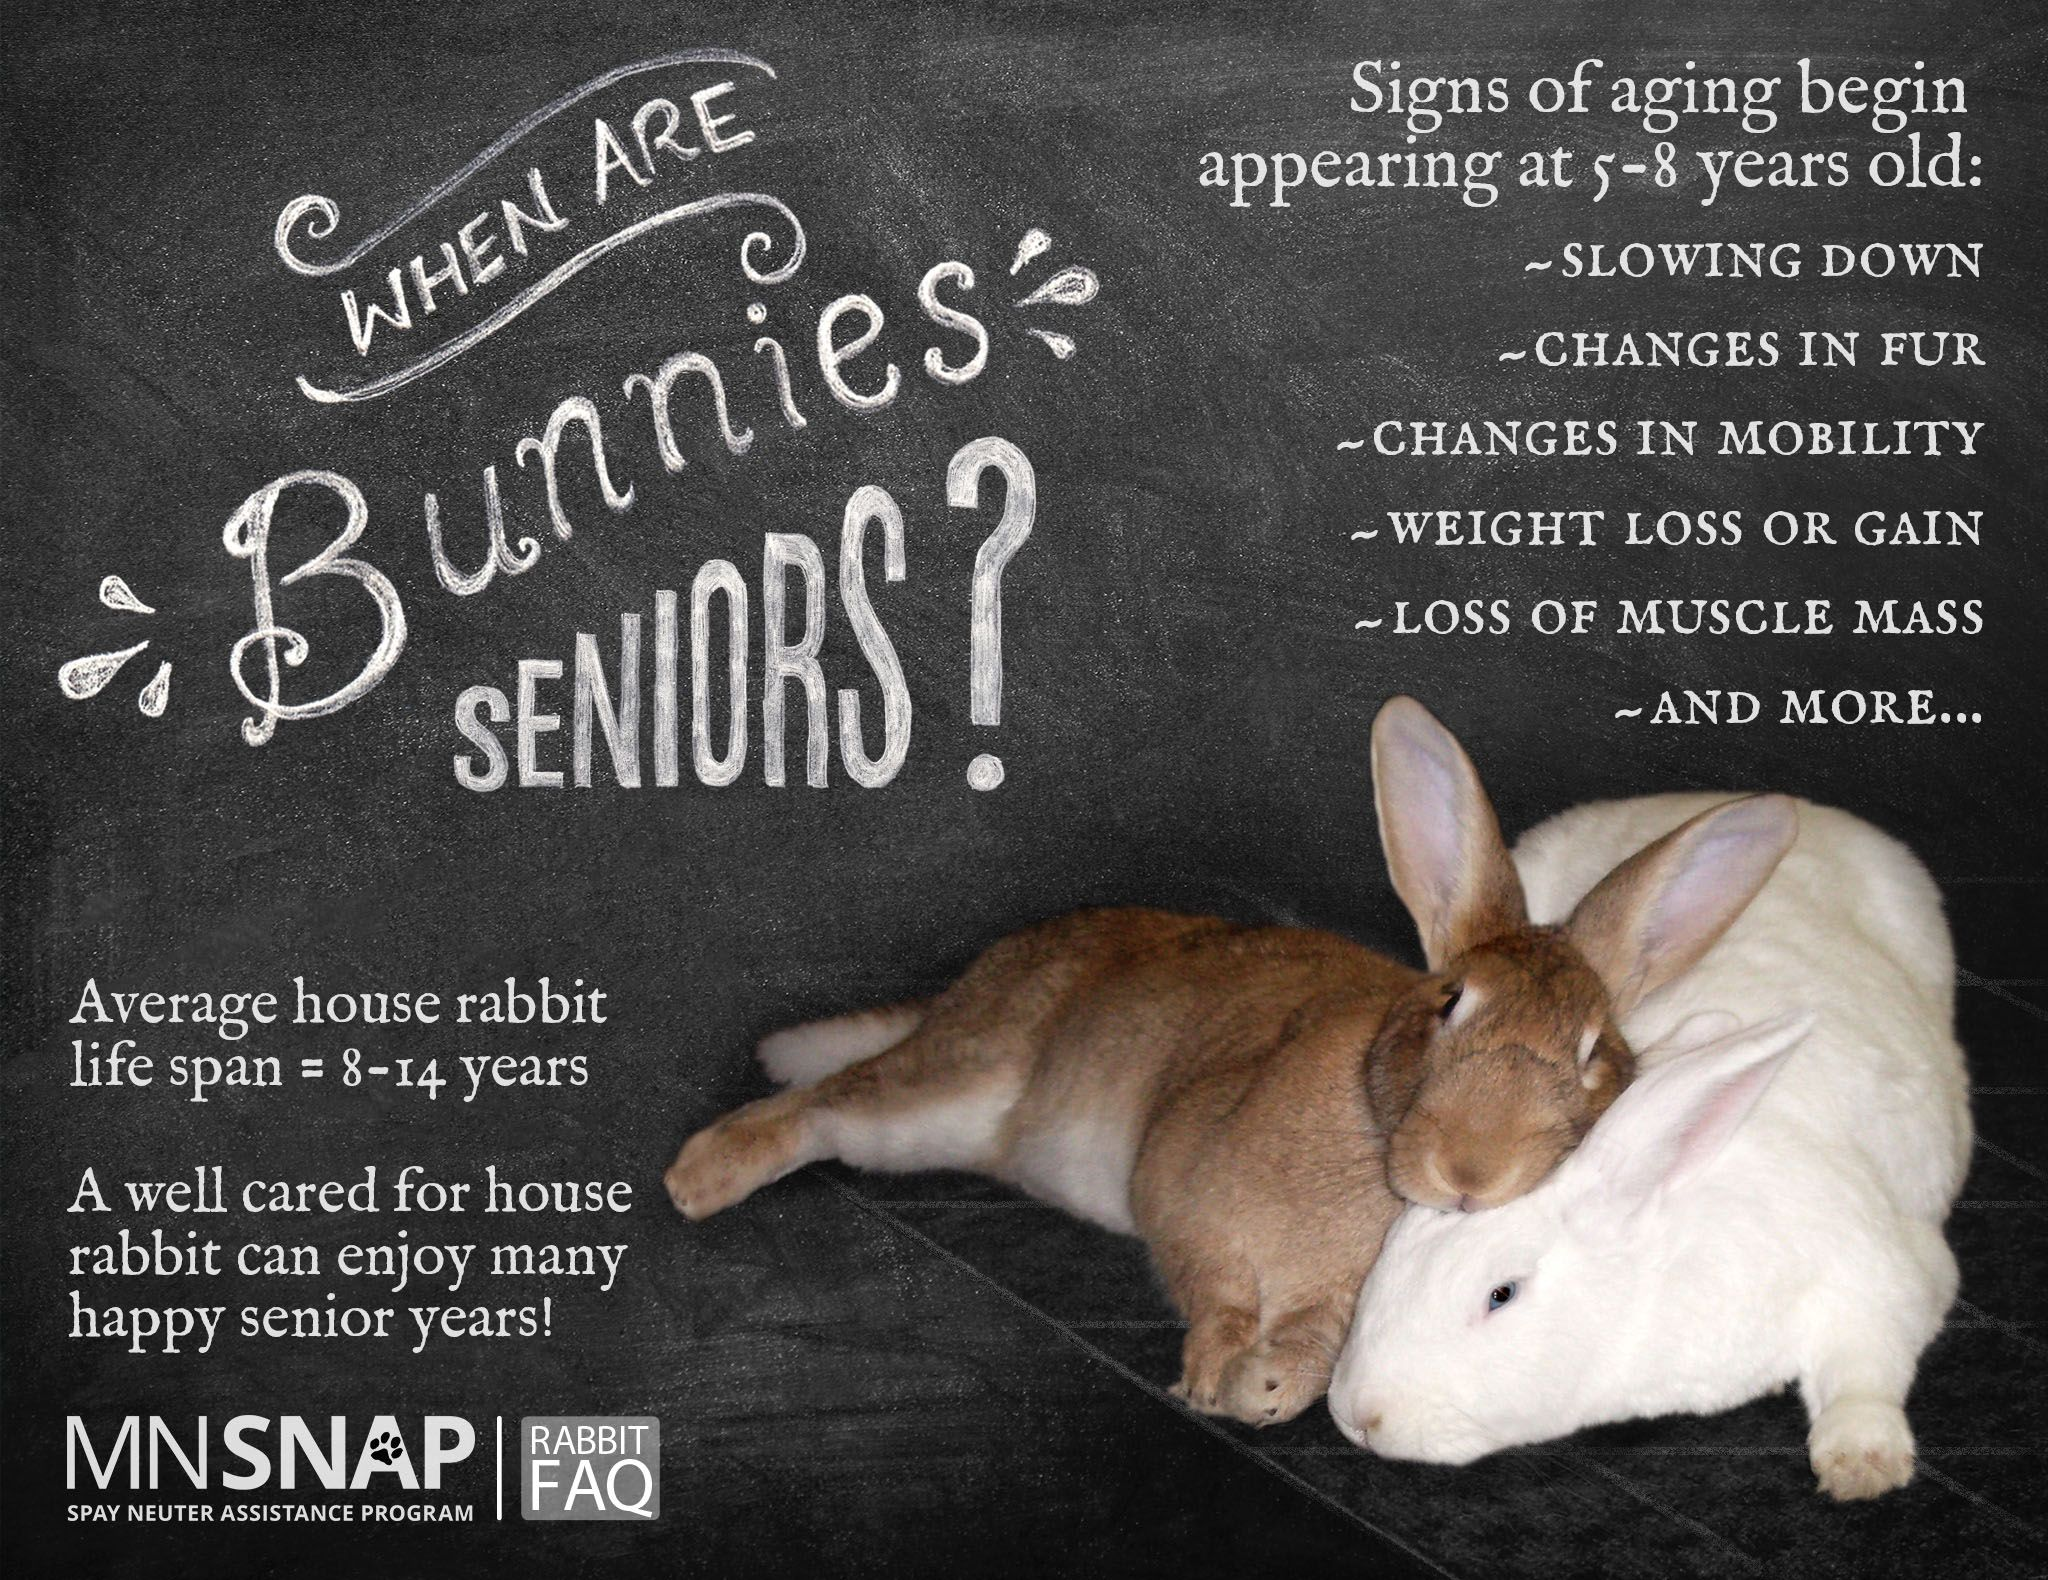 Life expectancy for a house rabbit is between 8 and 14